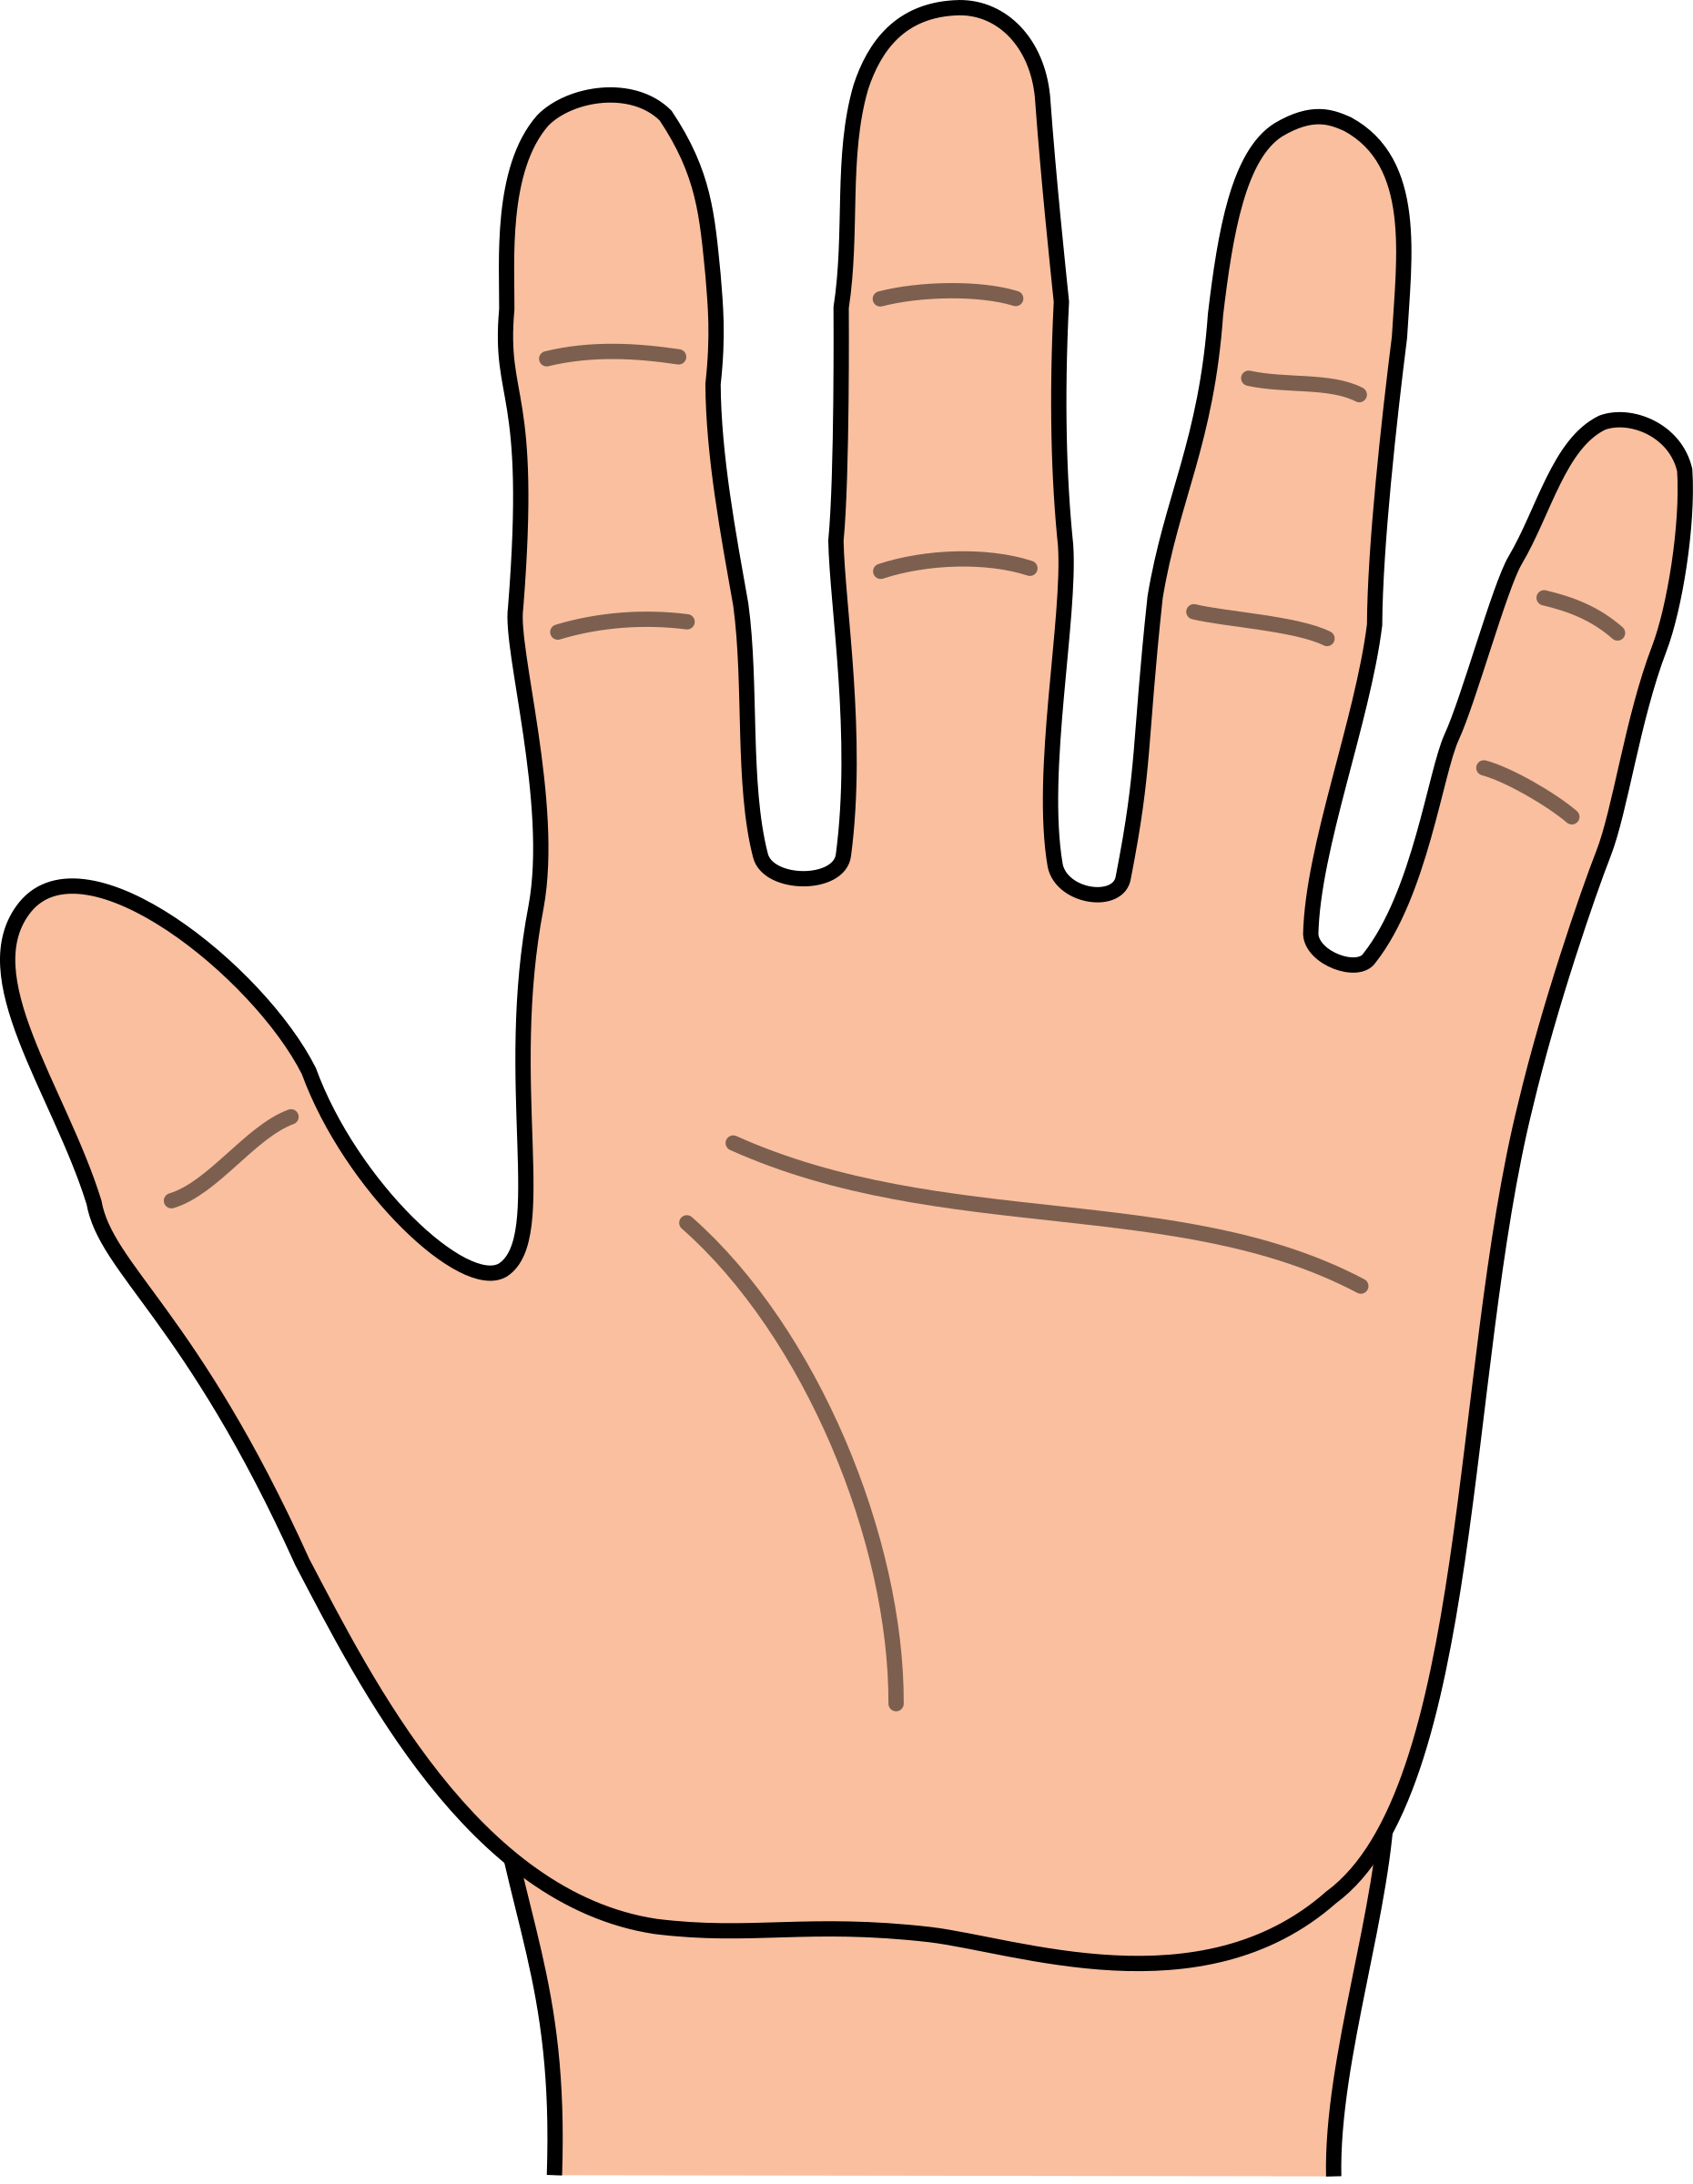 Fingers clipart 9 object, Fingers 9 object Transparent FREE.